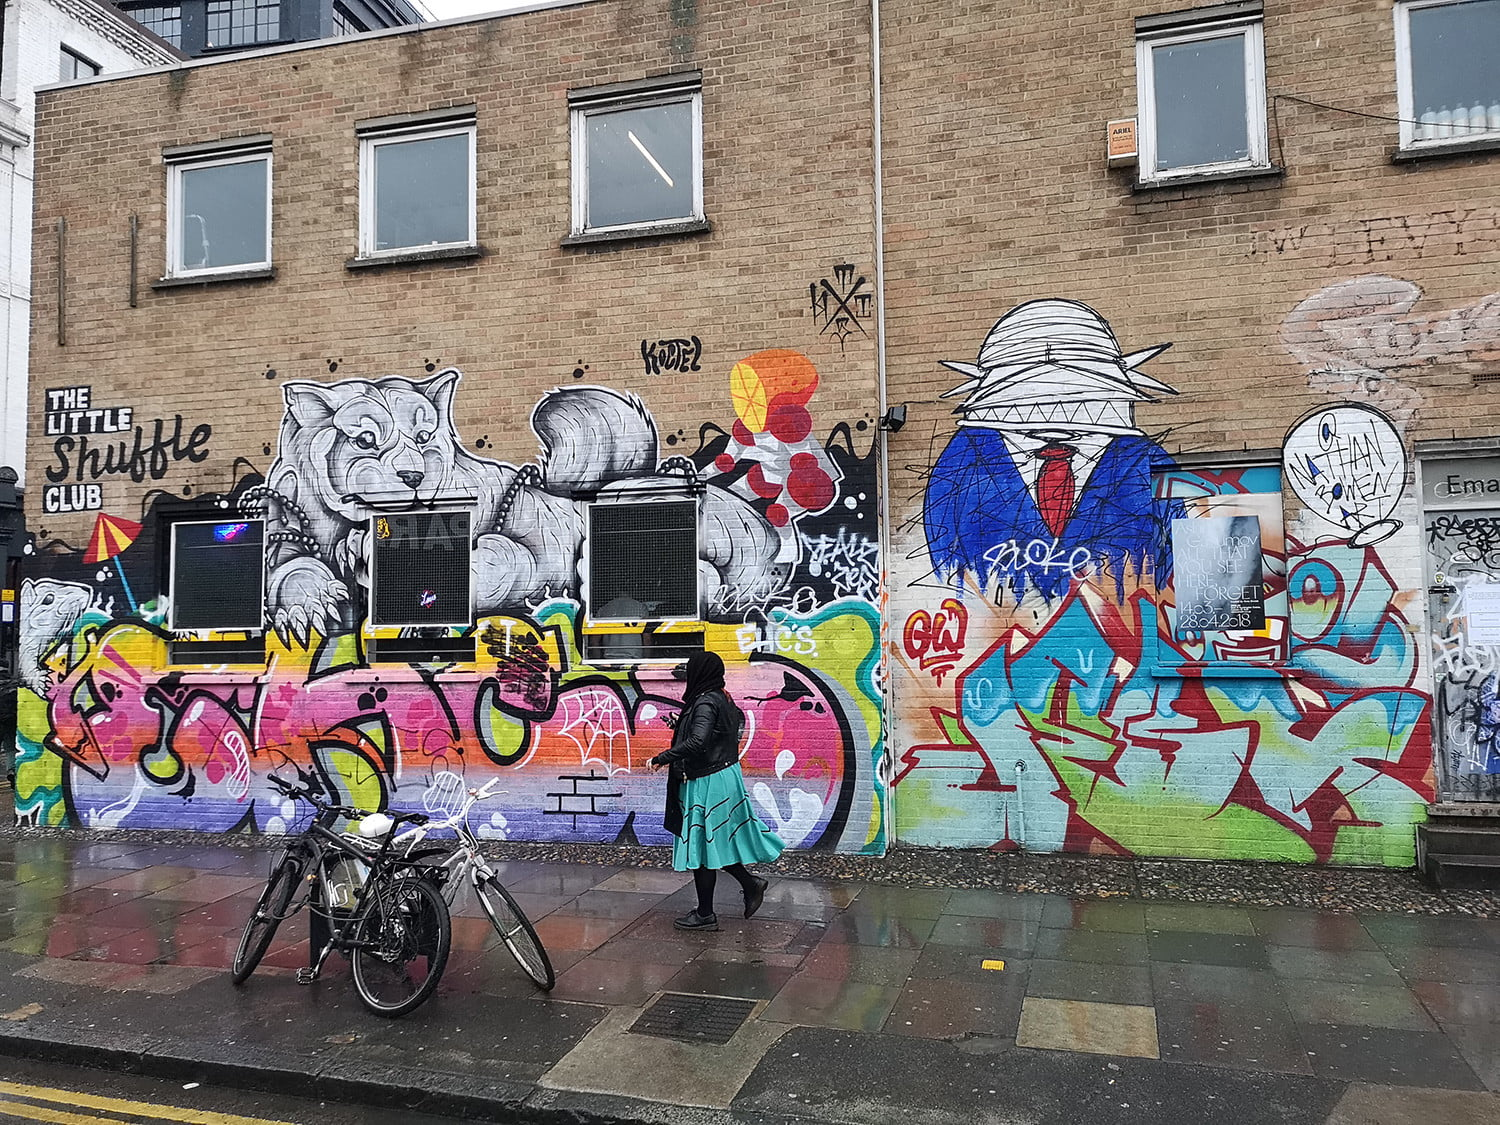 huawei p20 pro review sample photo graffiti